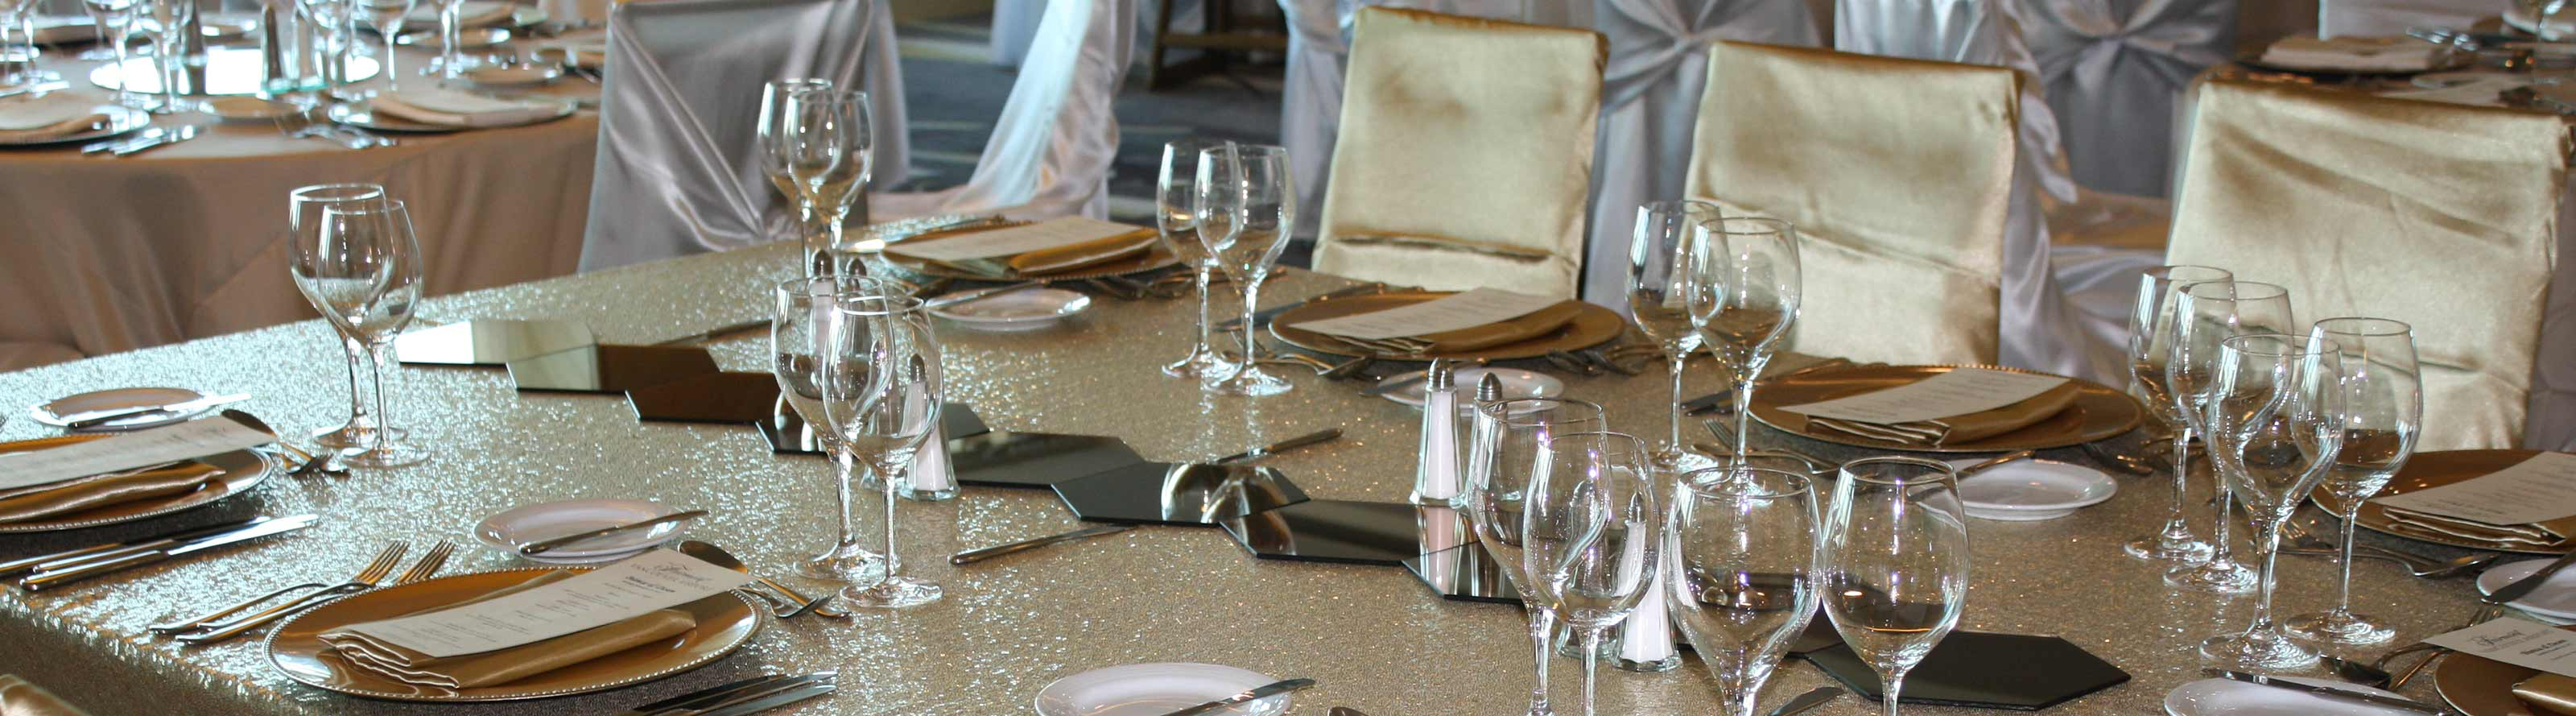 Products include tablecloths, chair covers and table overlays.